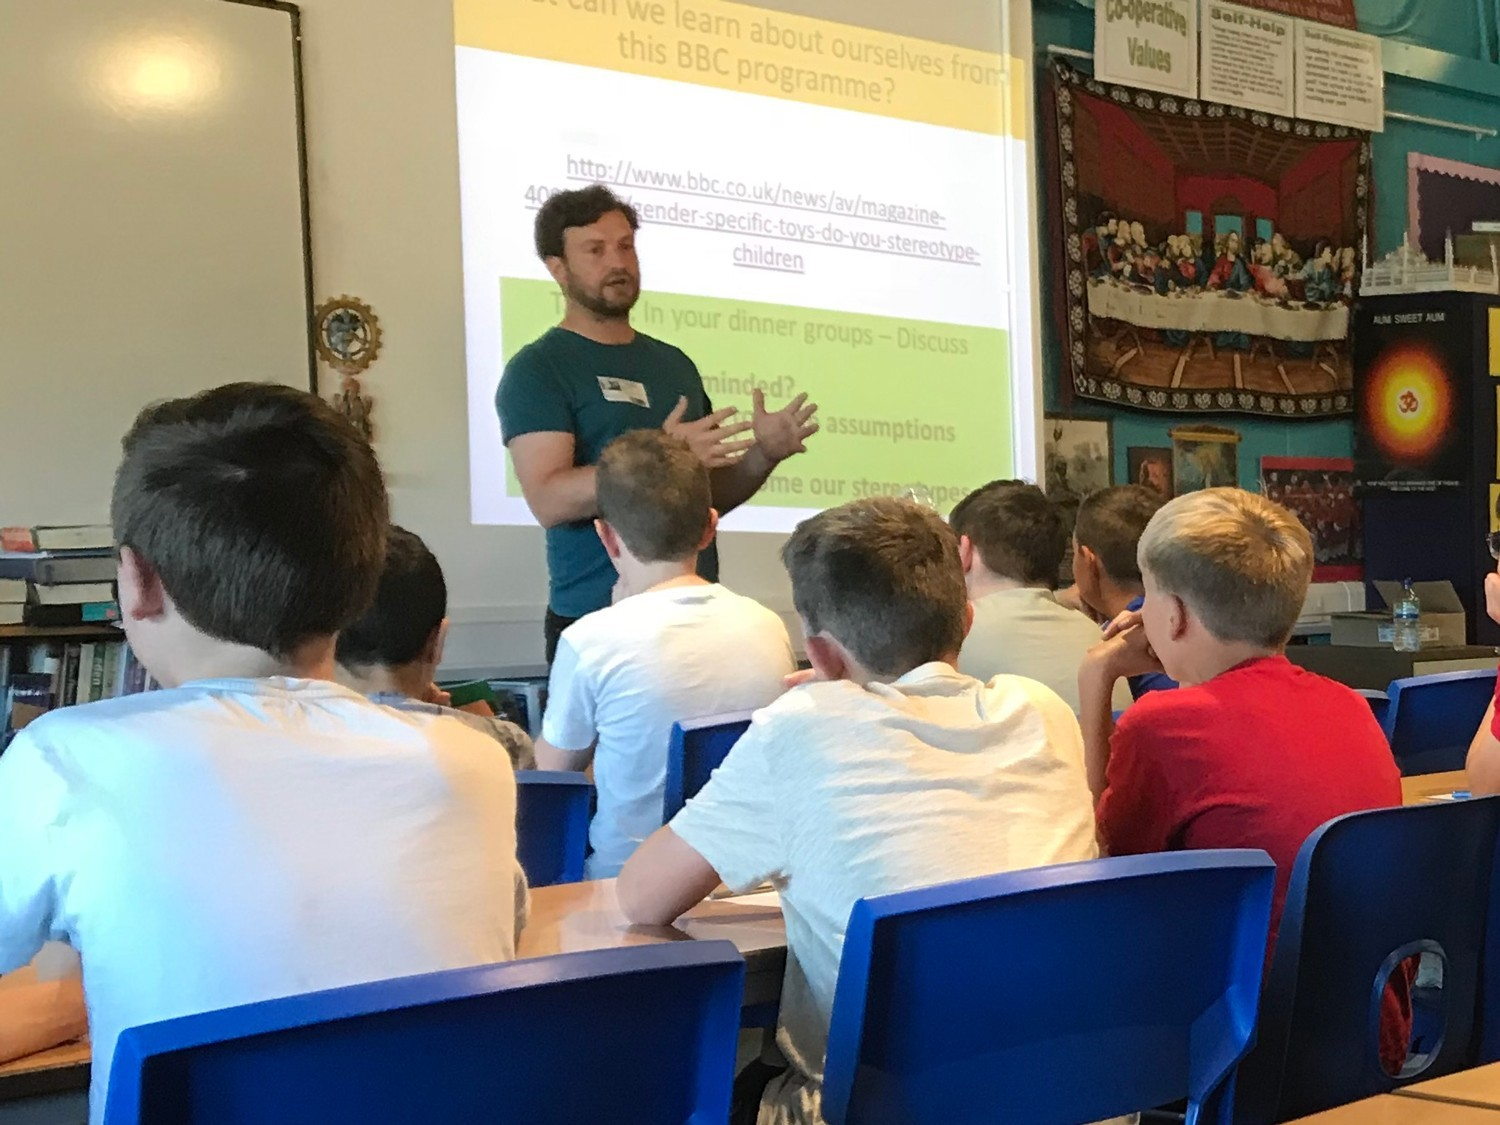 A man is teaching young people in a classroom